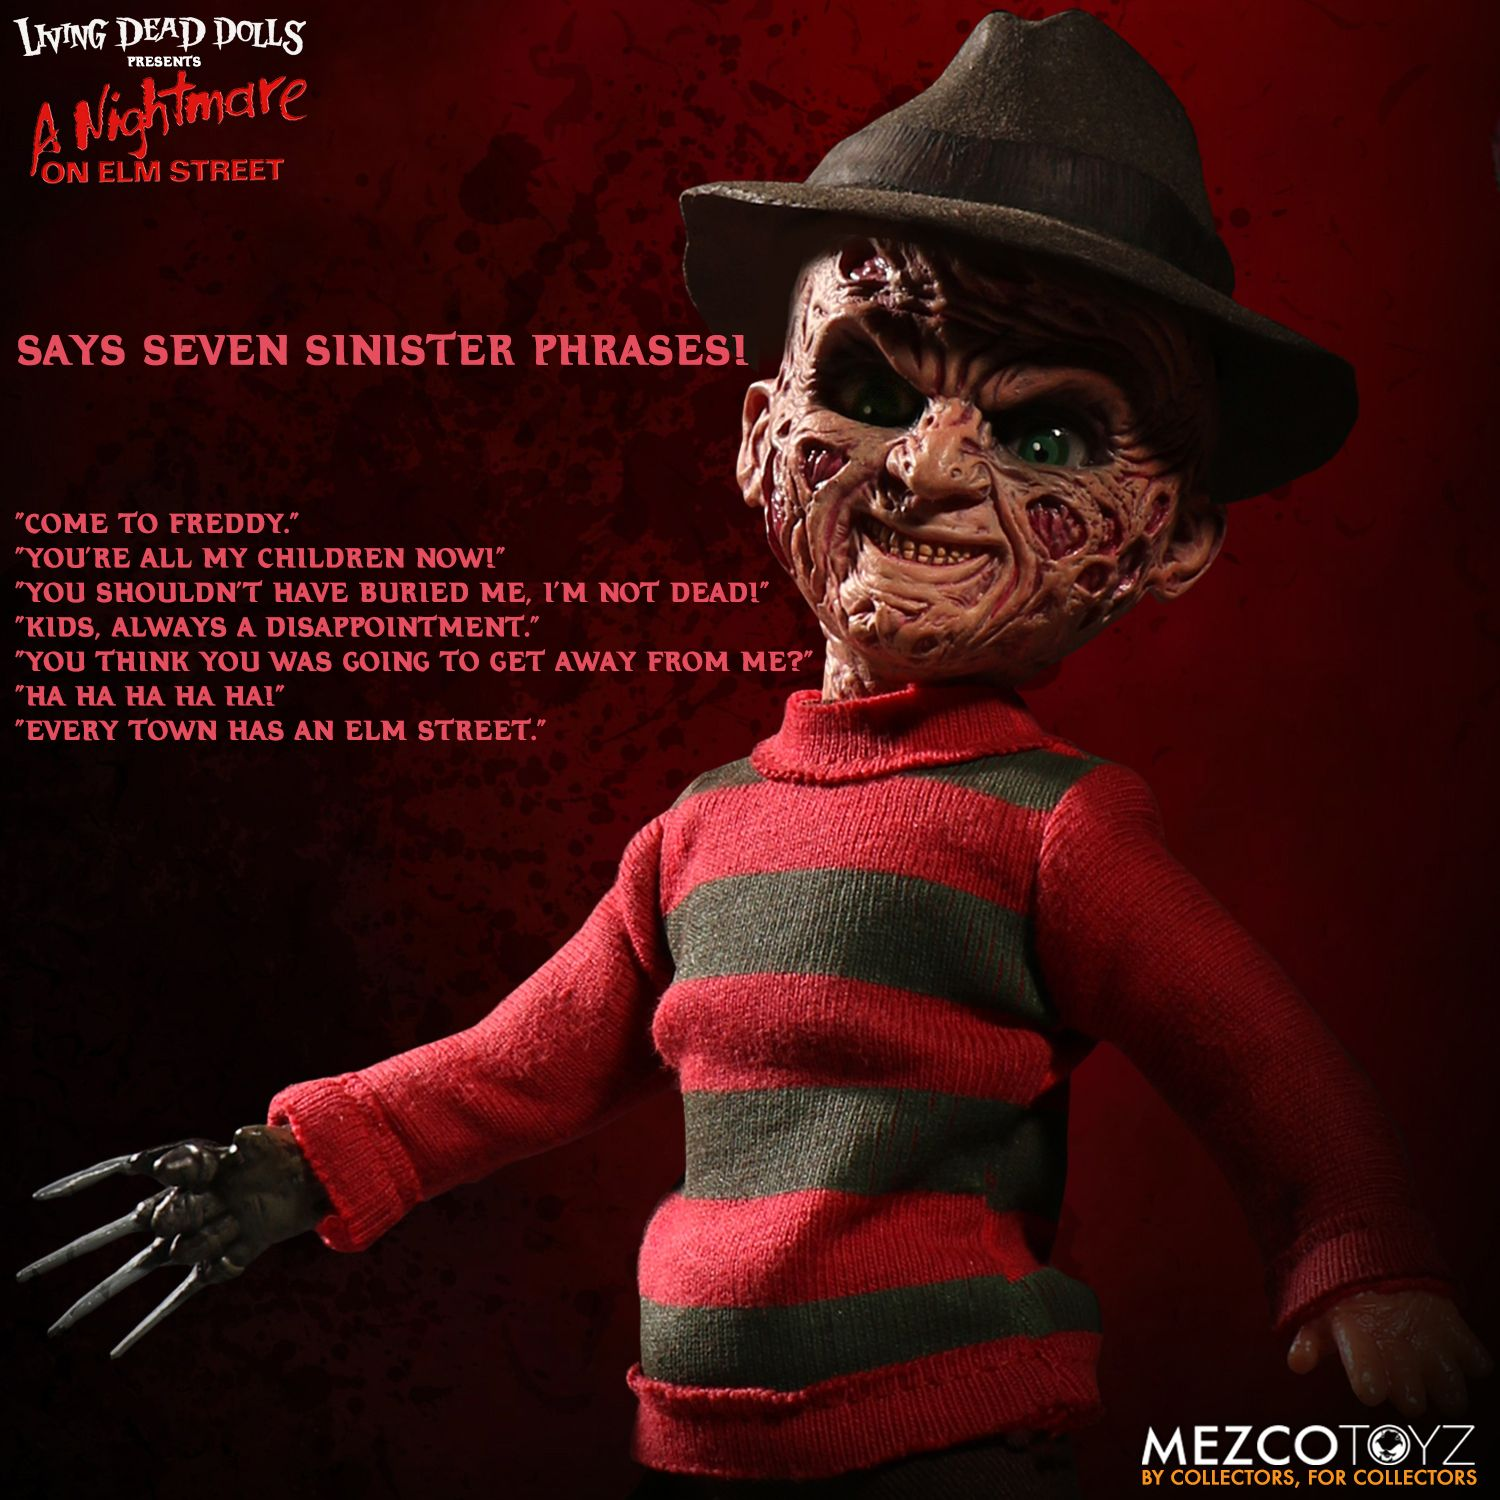 Living Dead Dolls Friday The 13th Jason Voorhees Doll: A Nightmare On Elm Street Talking